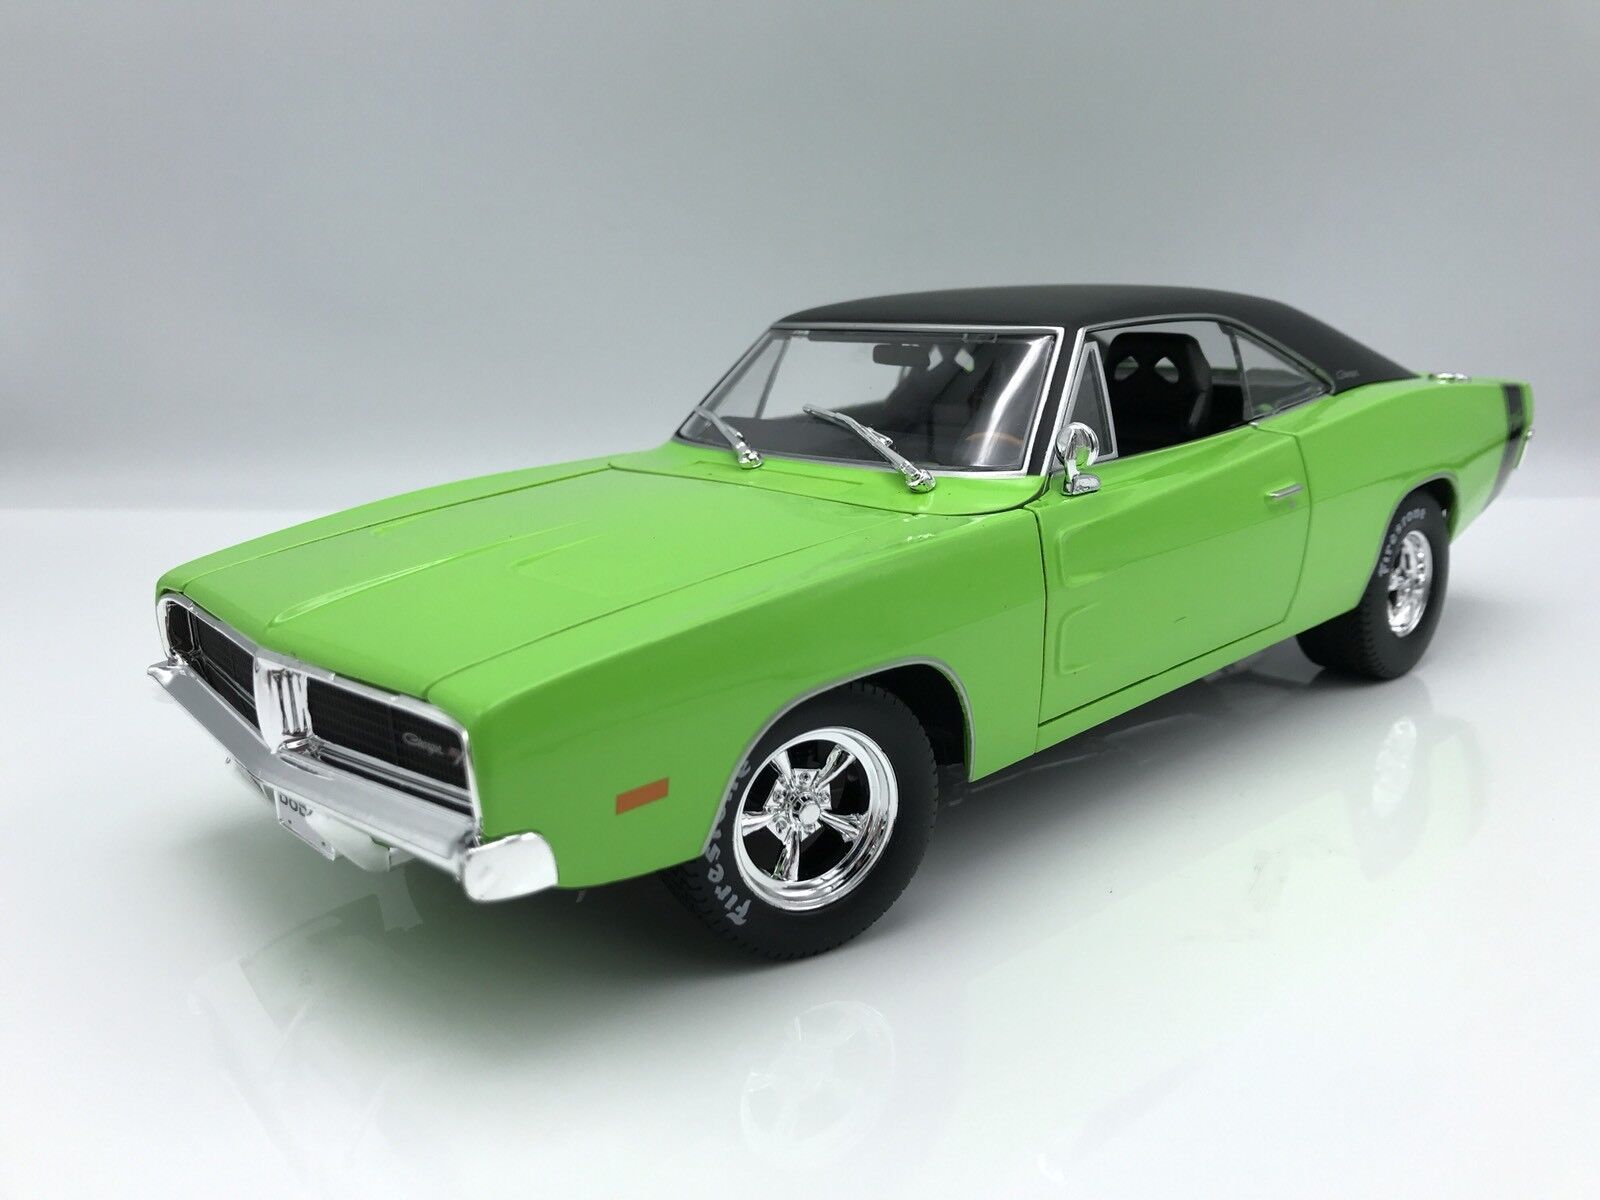 Dodge Charger R/T 1969 - Green  - 1:18 MAISTO - UVP 49,99 €   >>NEW COLOR <<